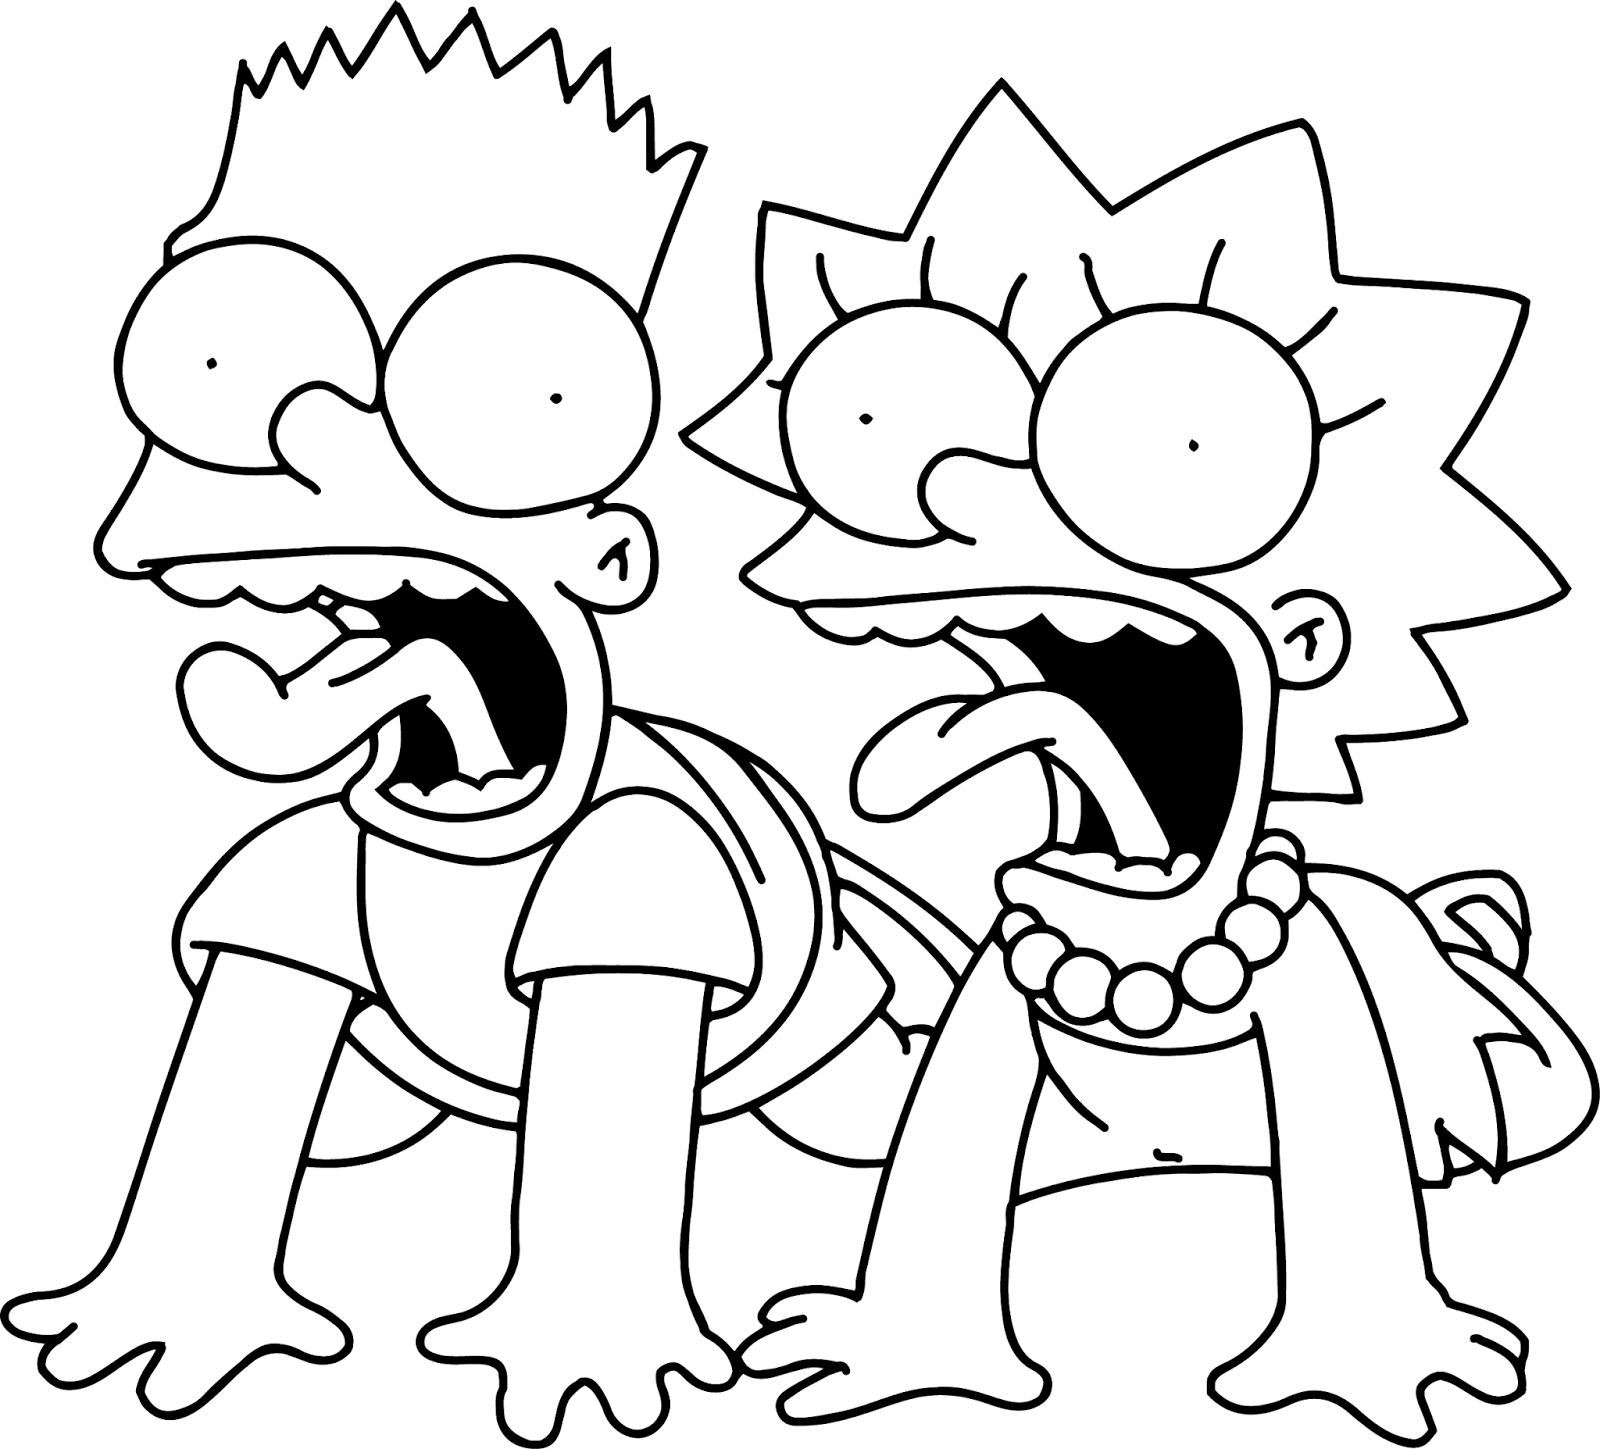 Simpsons Coloring Pages To Print Out Coloring Home